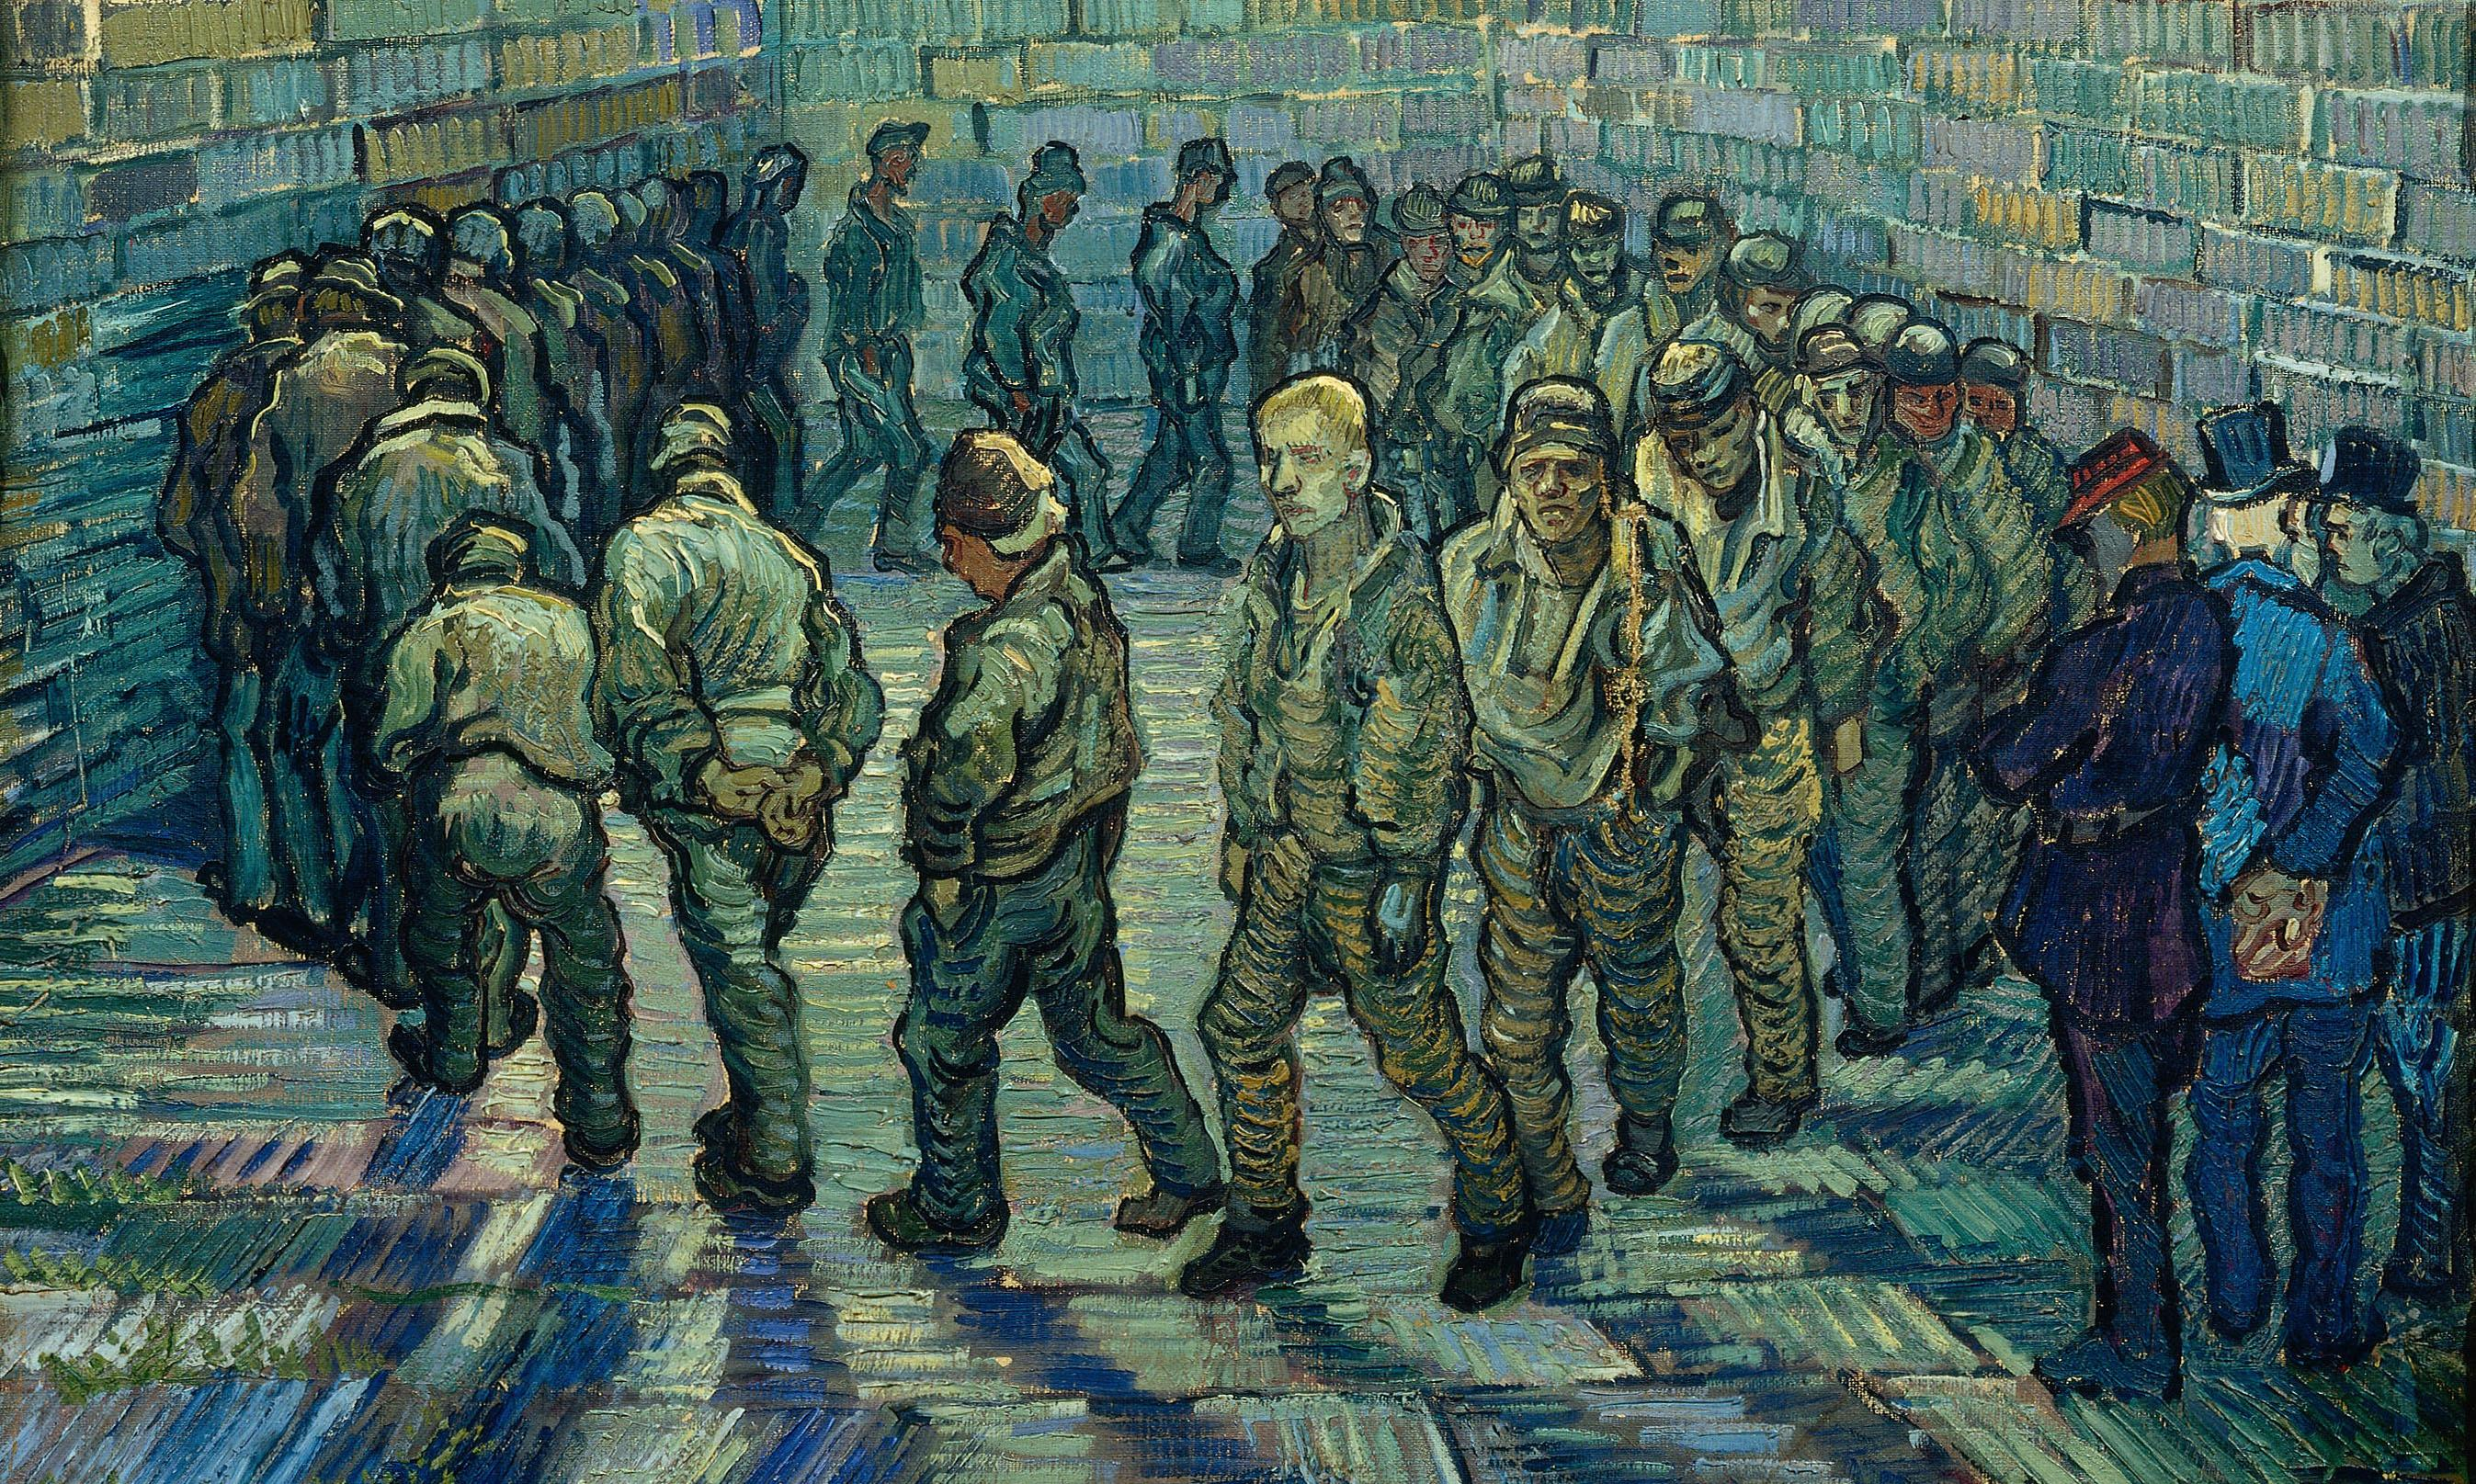 Vincent van Gogh's Prisoners Exercising: round and round the yard